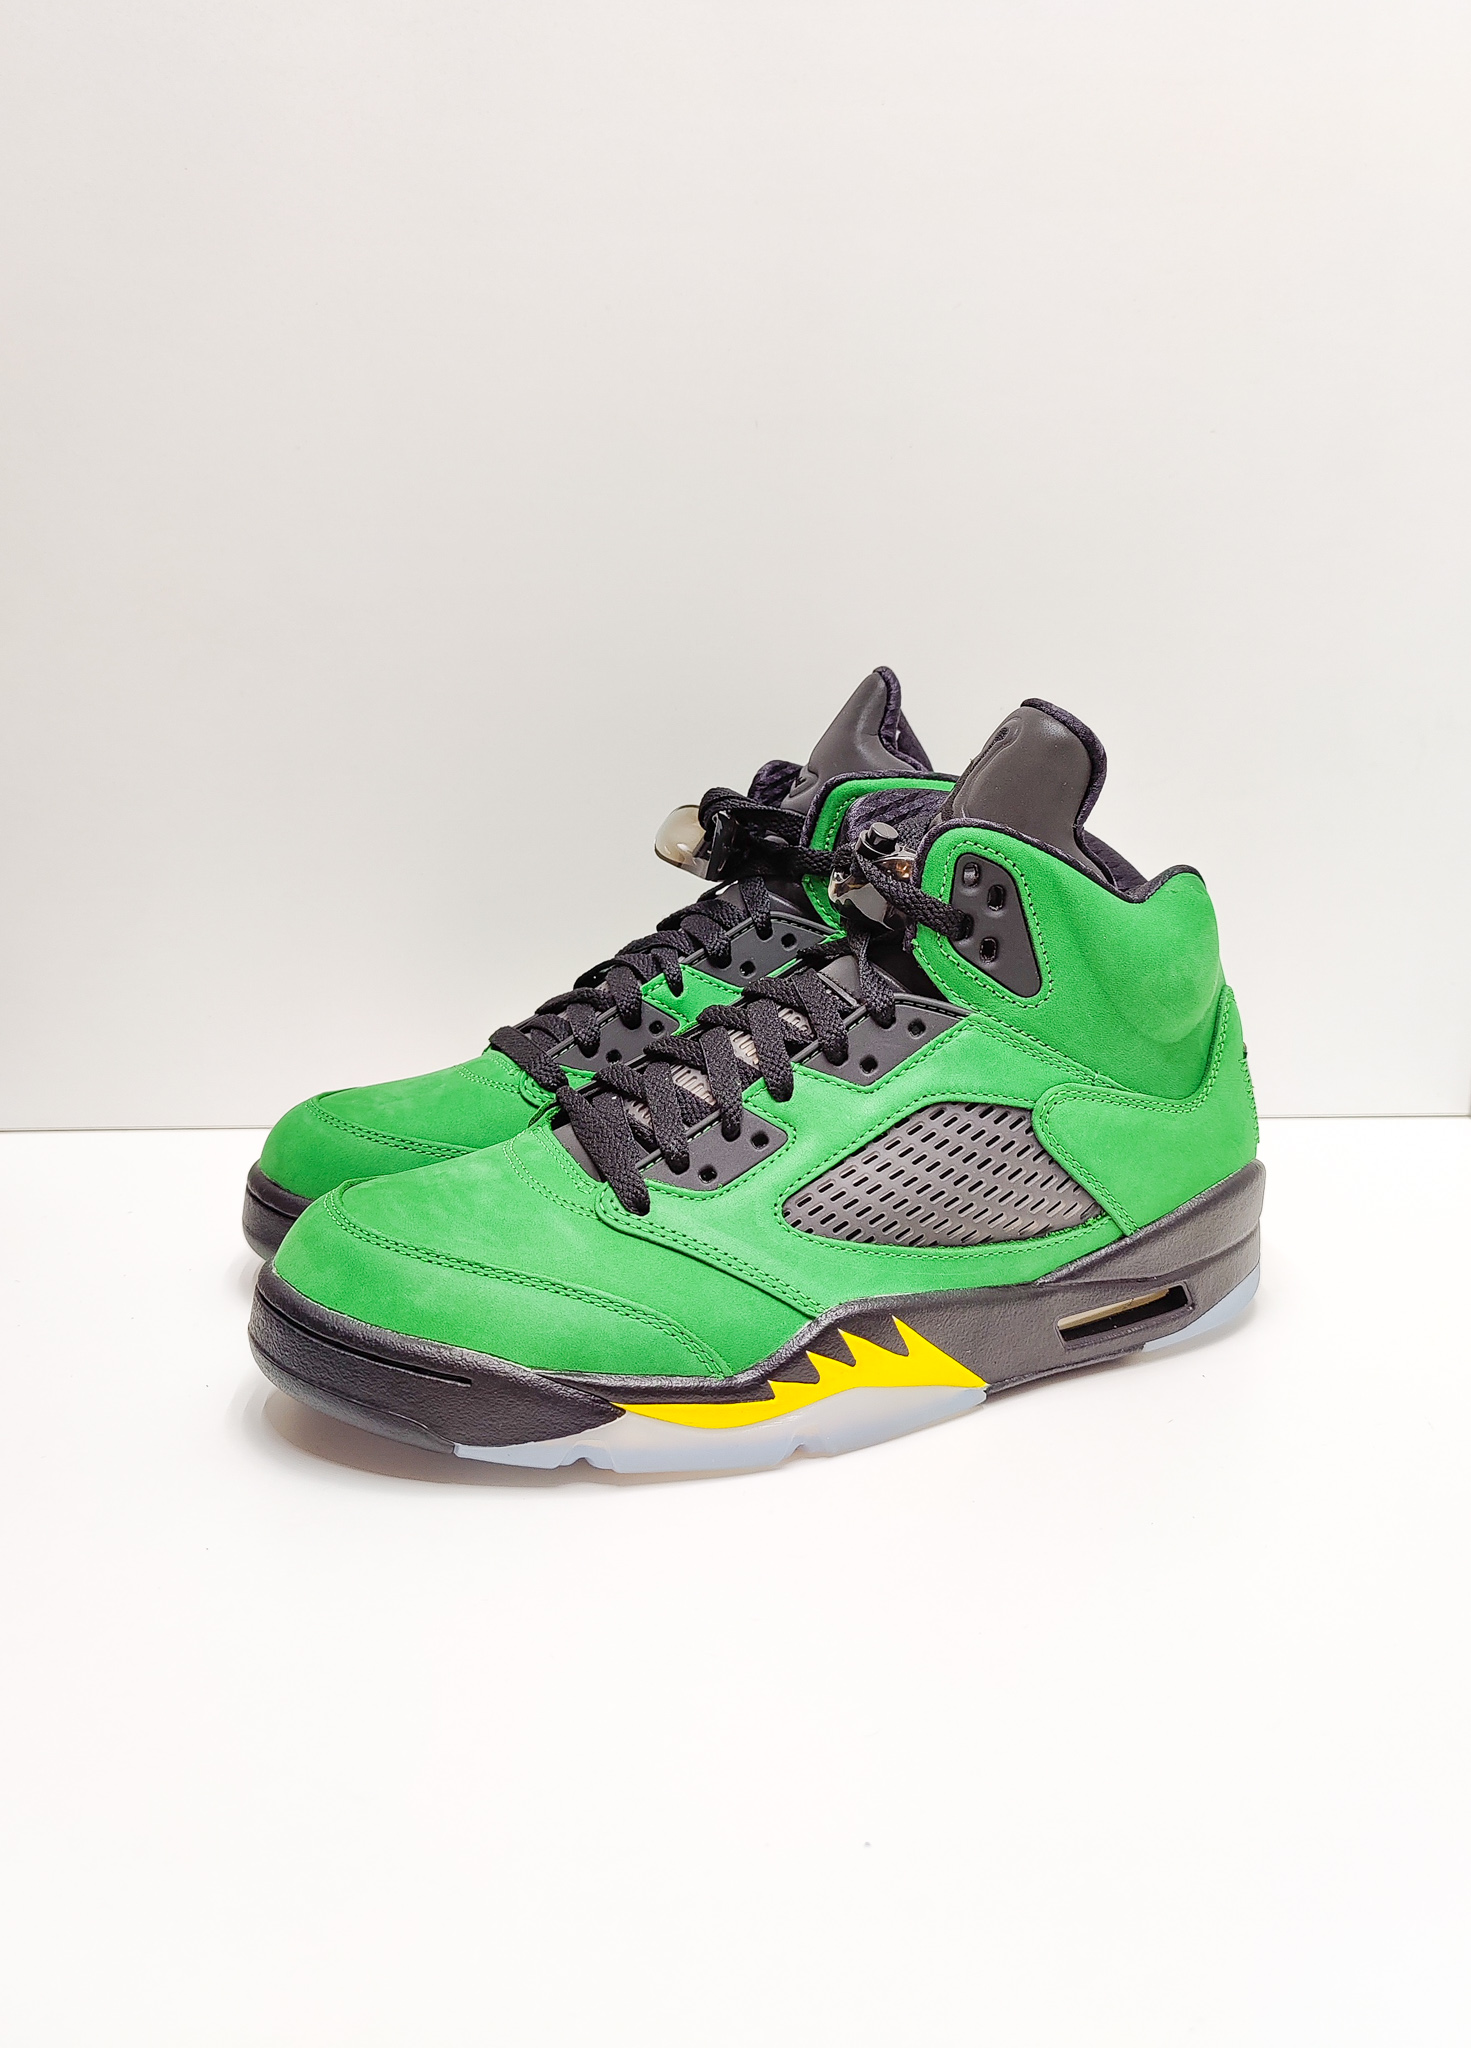 Jordan 5 Retro SE Oregon